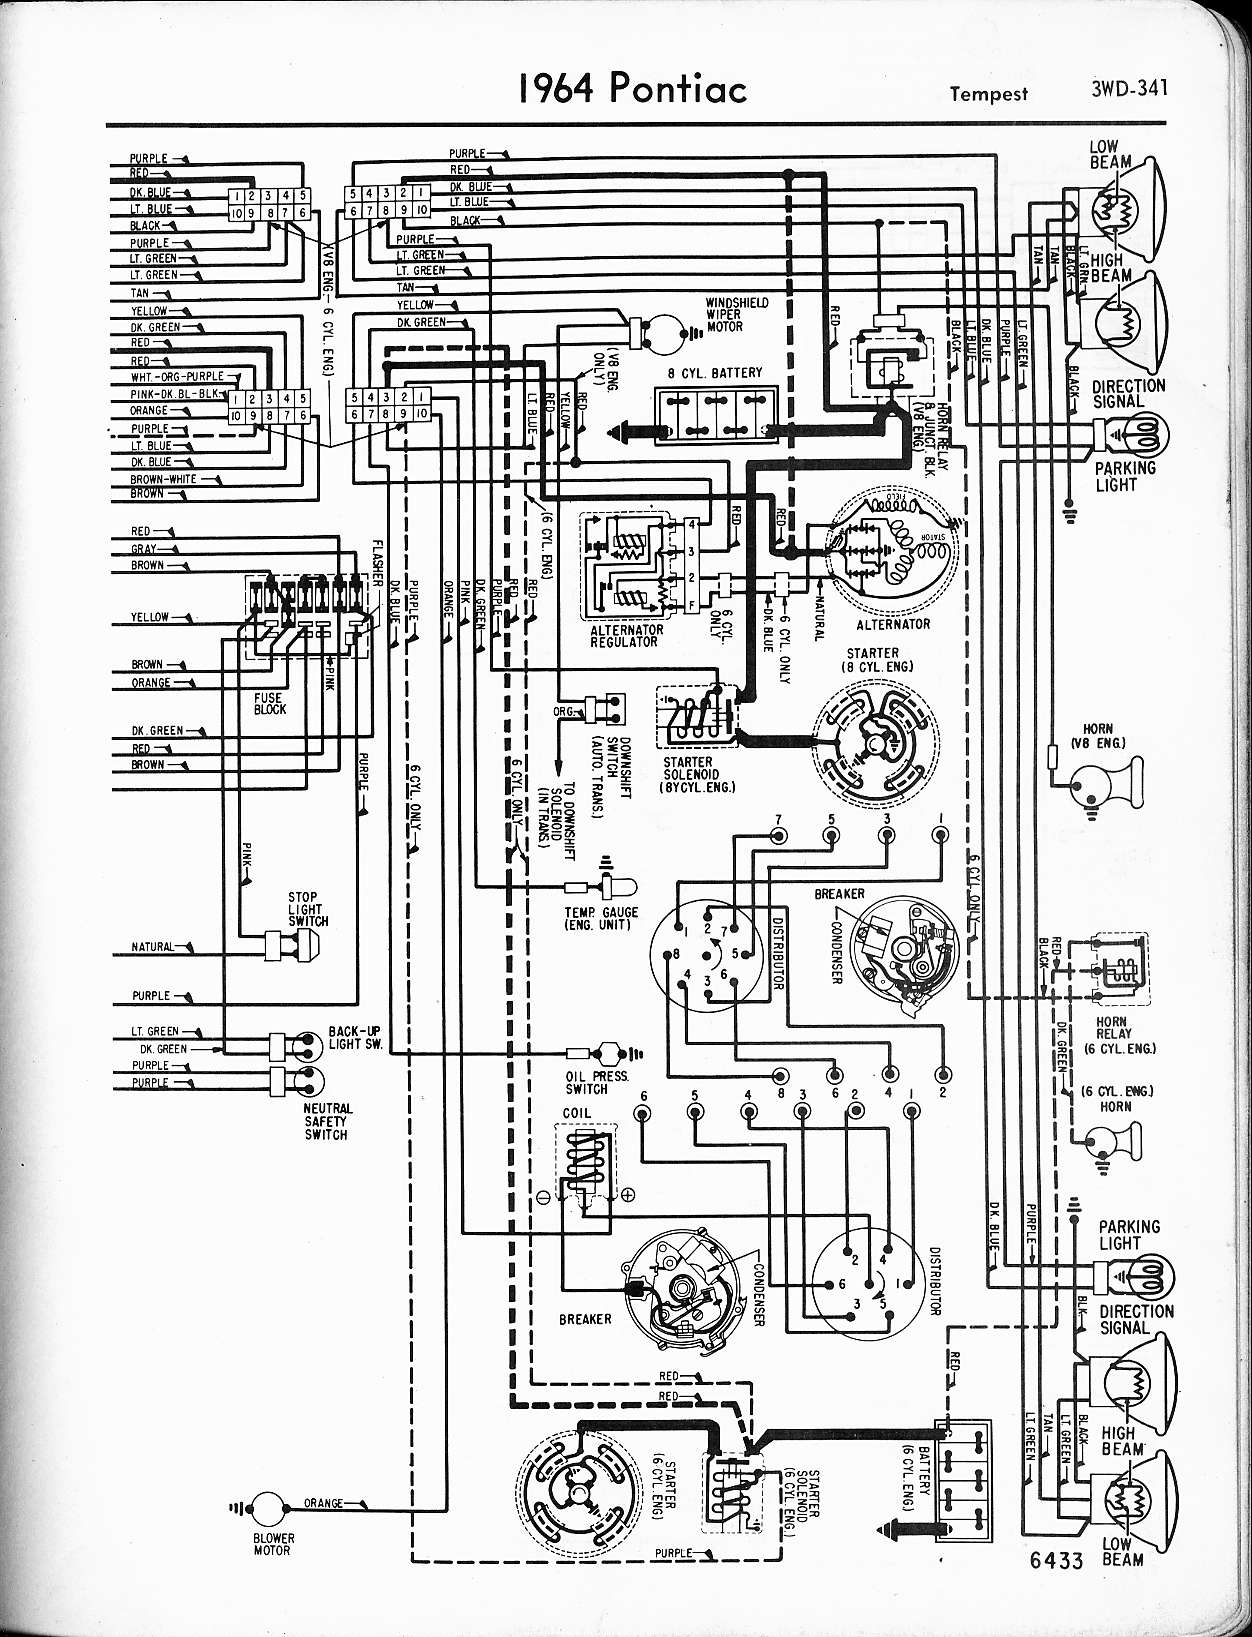 1969 pontiac le mans fuse box diagram wiring diagram data 1976 Pontiac LeMans 1971 lemans fuse box wiring diagram detailed pontiac g6 fuse box location 1969 pontiac le mans fuse box diagram